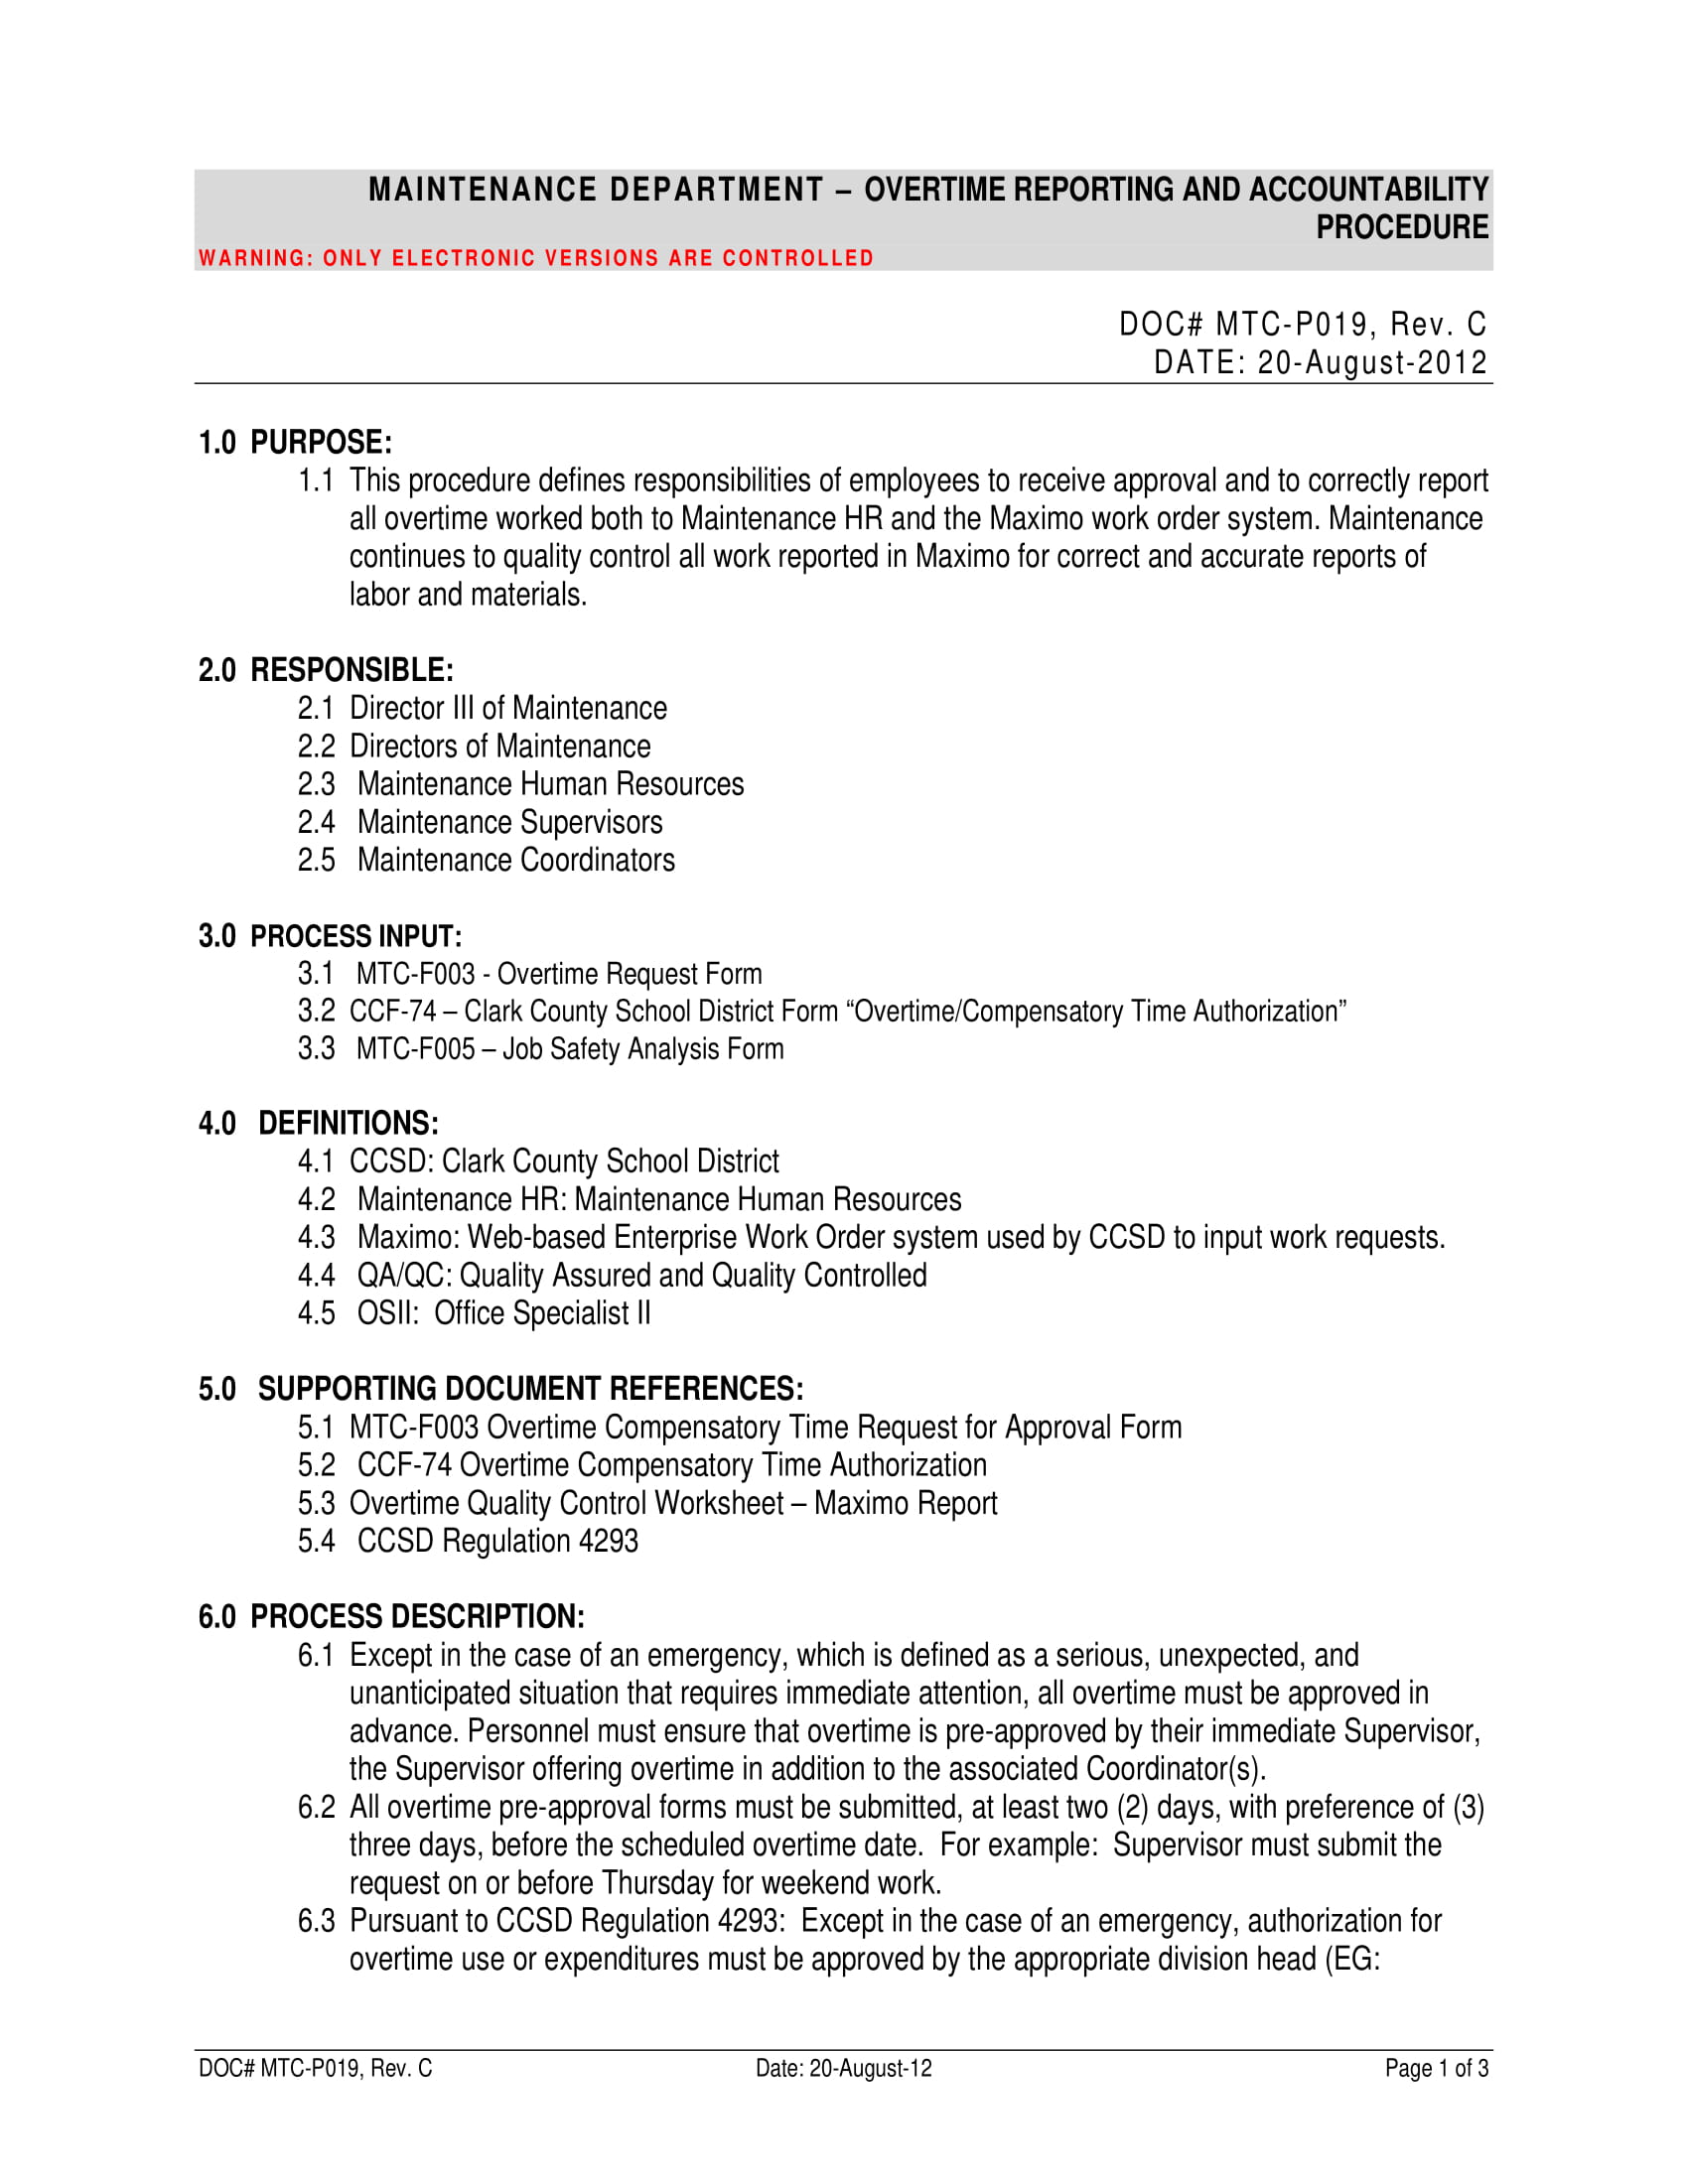 Overtime Request Form | 9 Work Overtime Report Examples Pdf